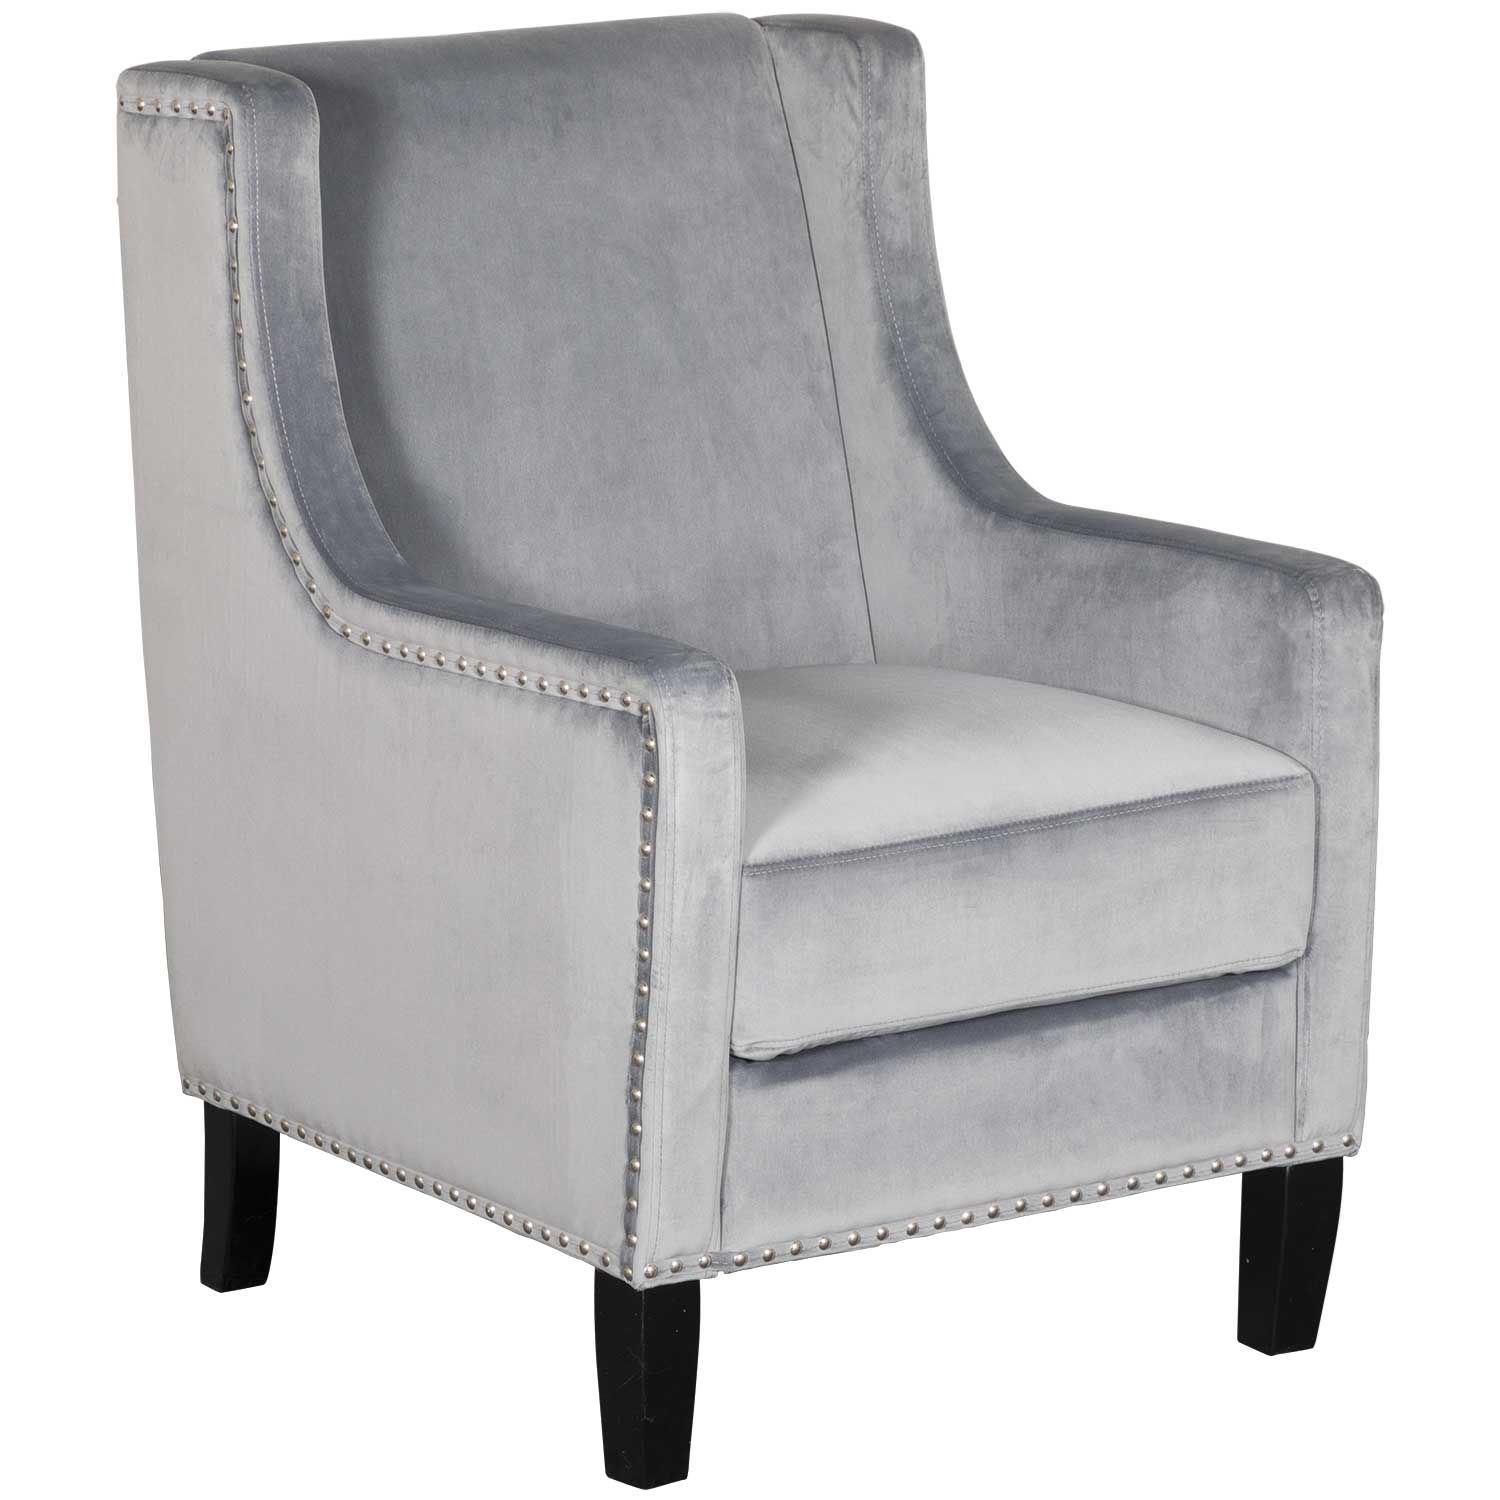 Awesome Claire Grey Accent Chair Caraccident5 Cool Chair Designs And Ideas Caraccident5Info